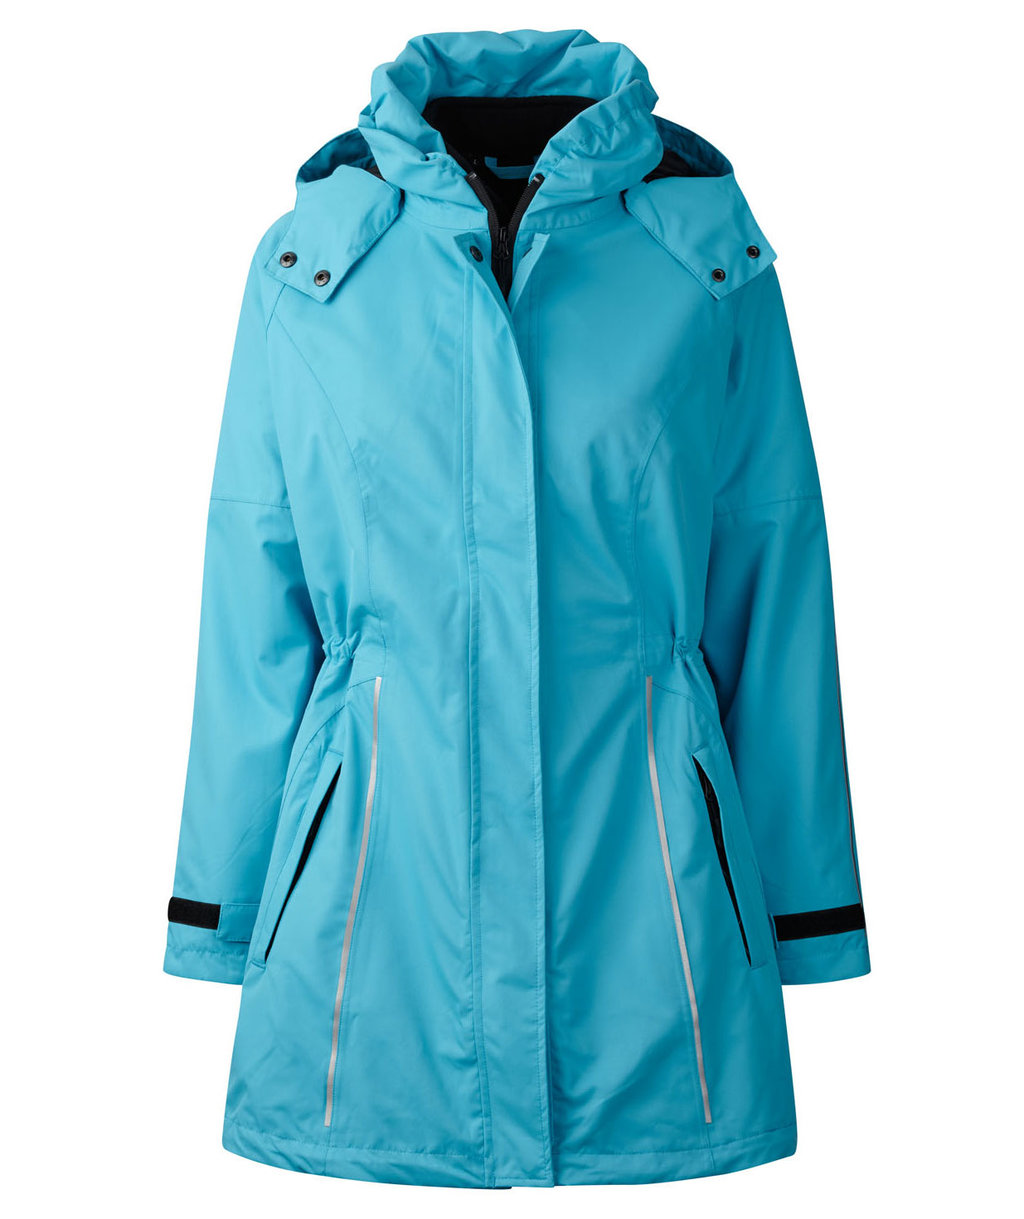 Xplor zip-in dame skaljakke, Aqua